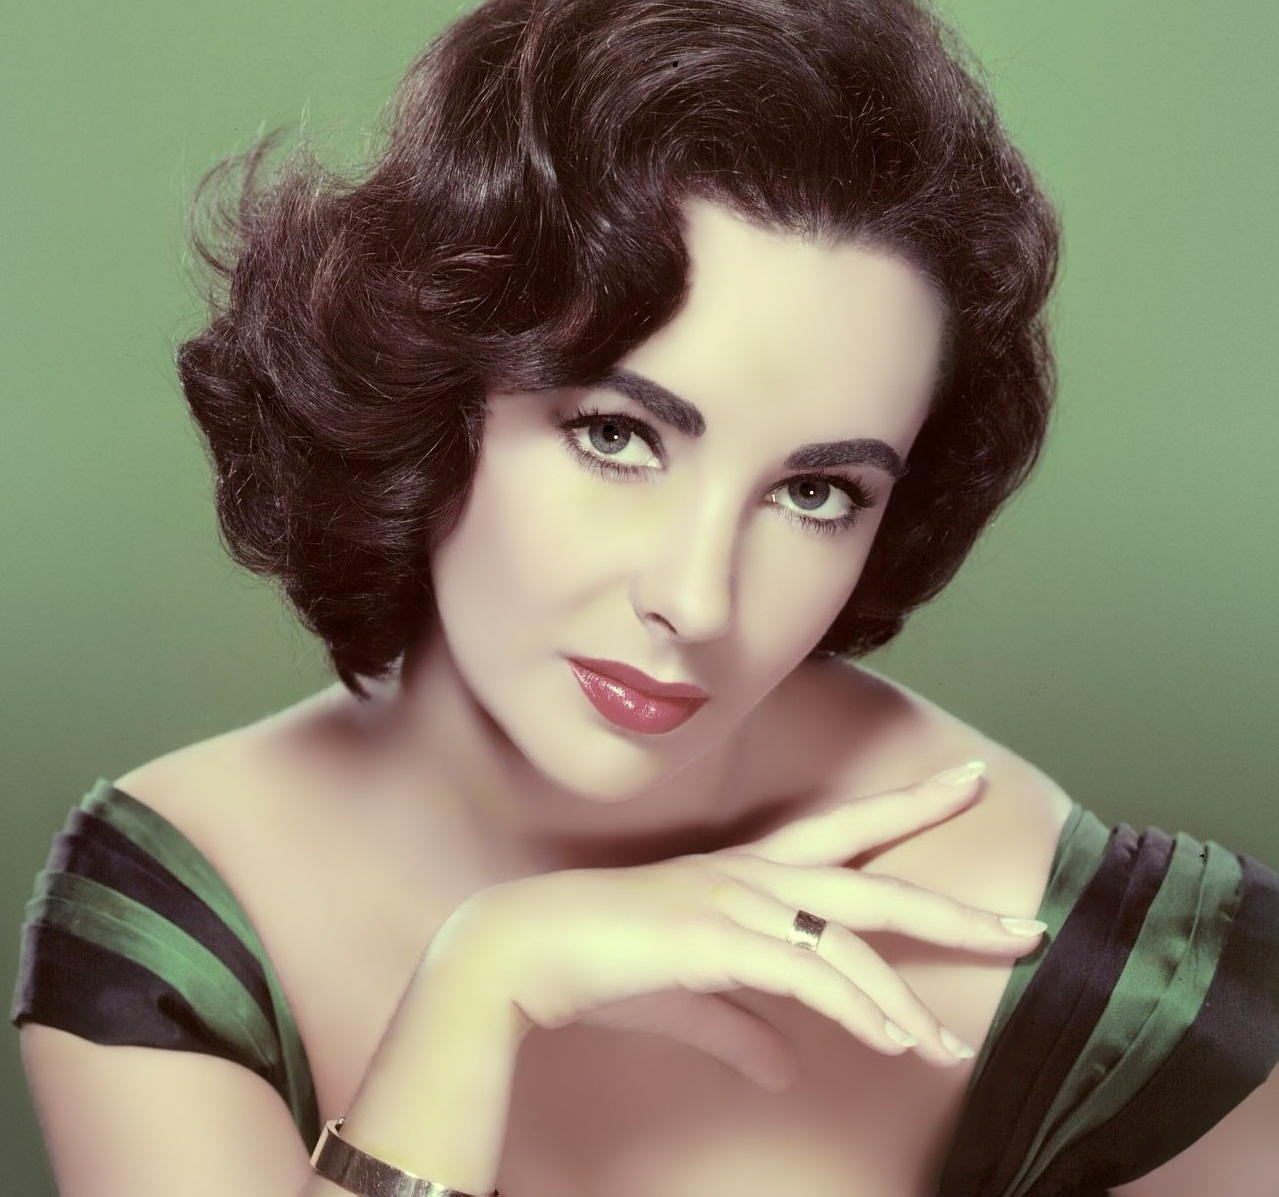 Elizabeth Taylor - An Icon of Beauty and Fashion